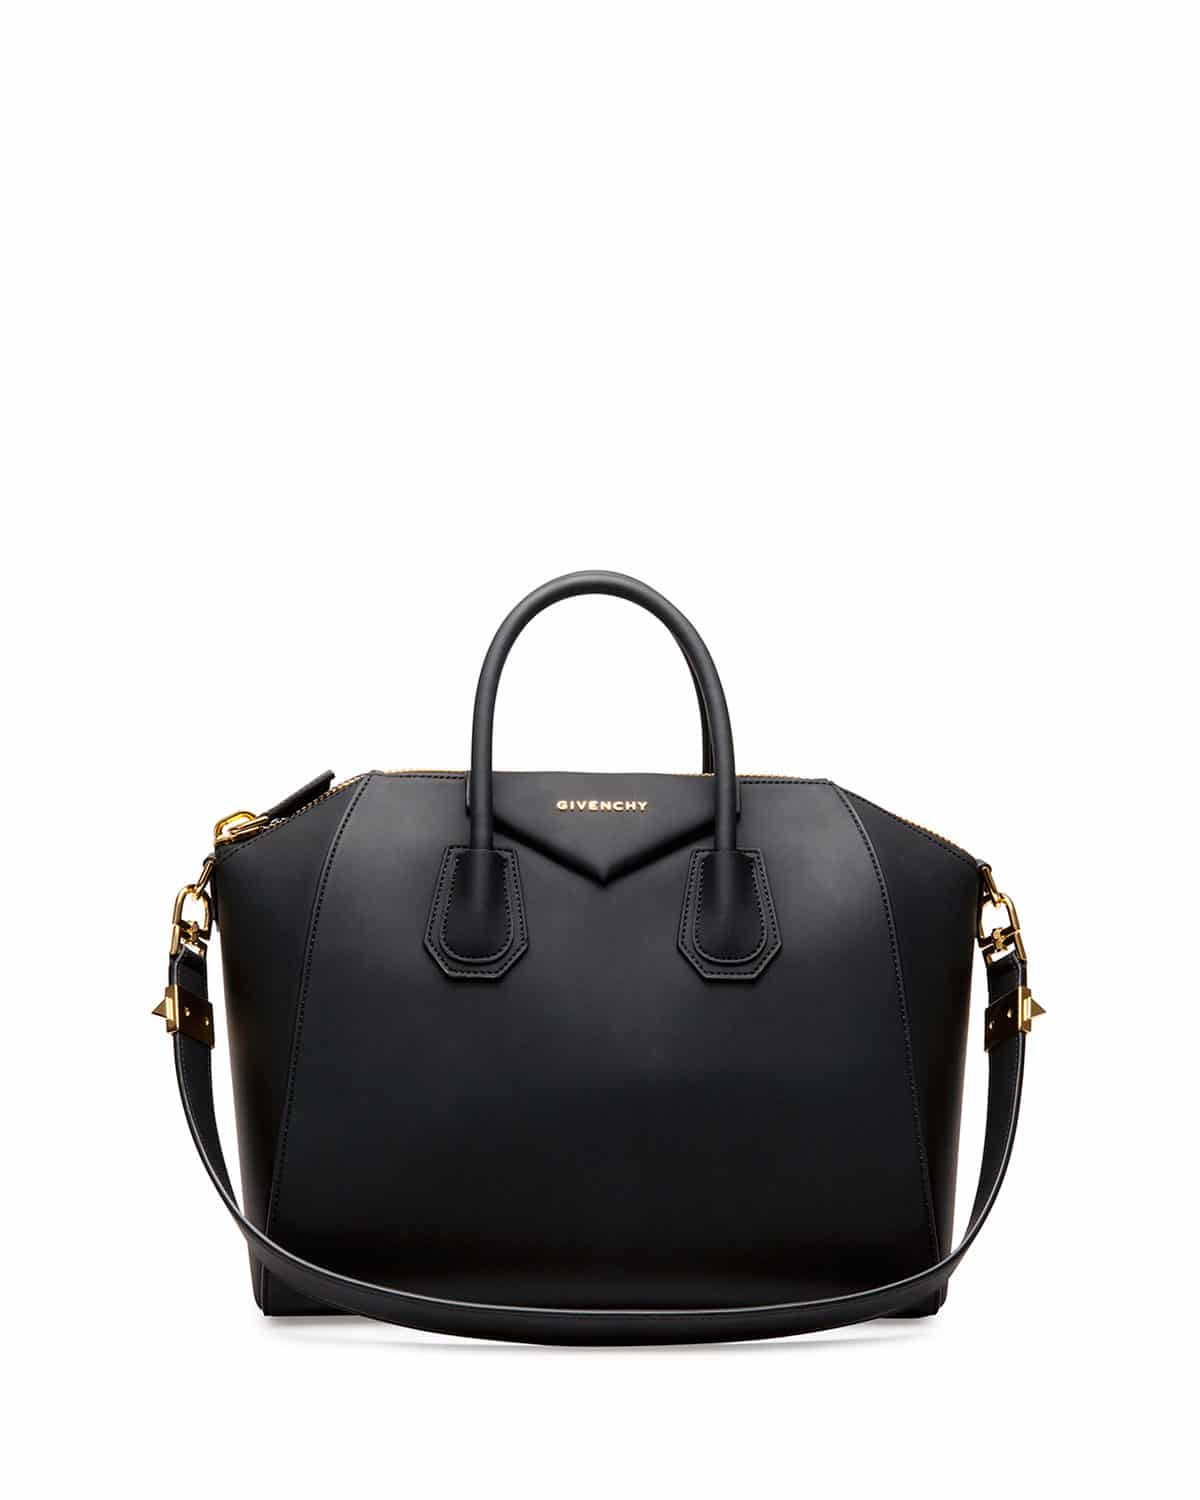 givenchy cruise 2015 bag collection with more croc. Black Bedroom Furniture Sets. Home Design Ideas